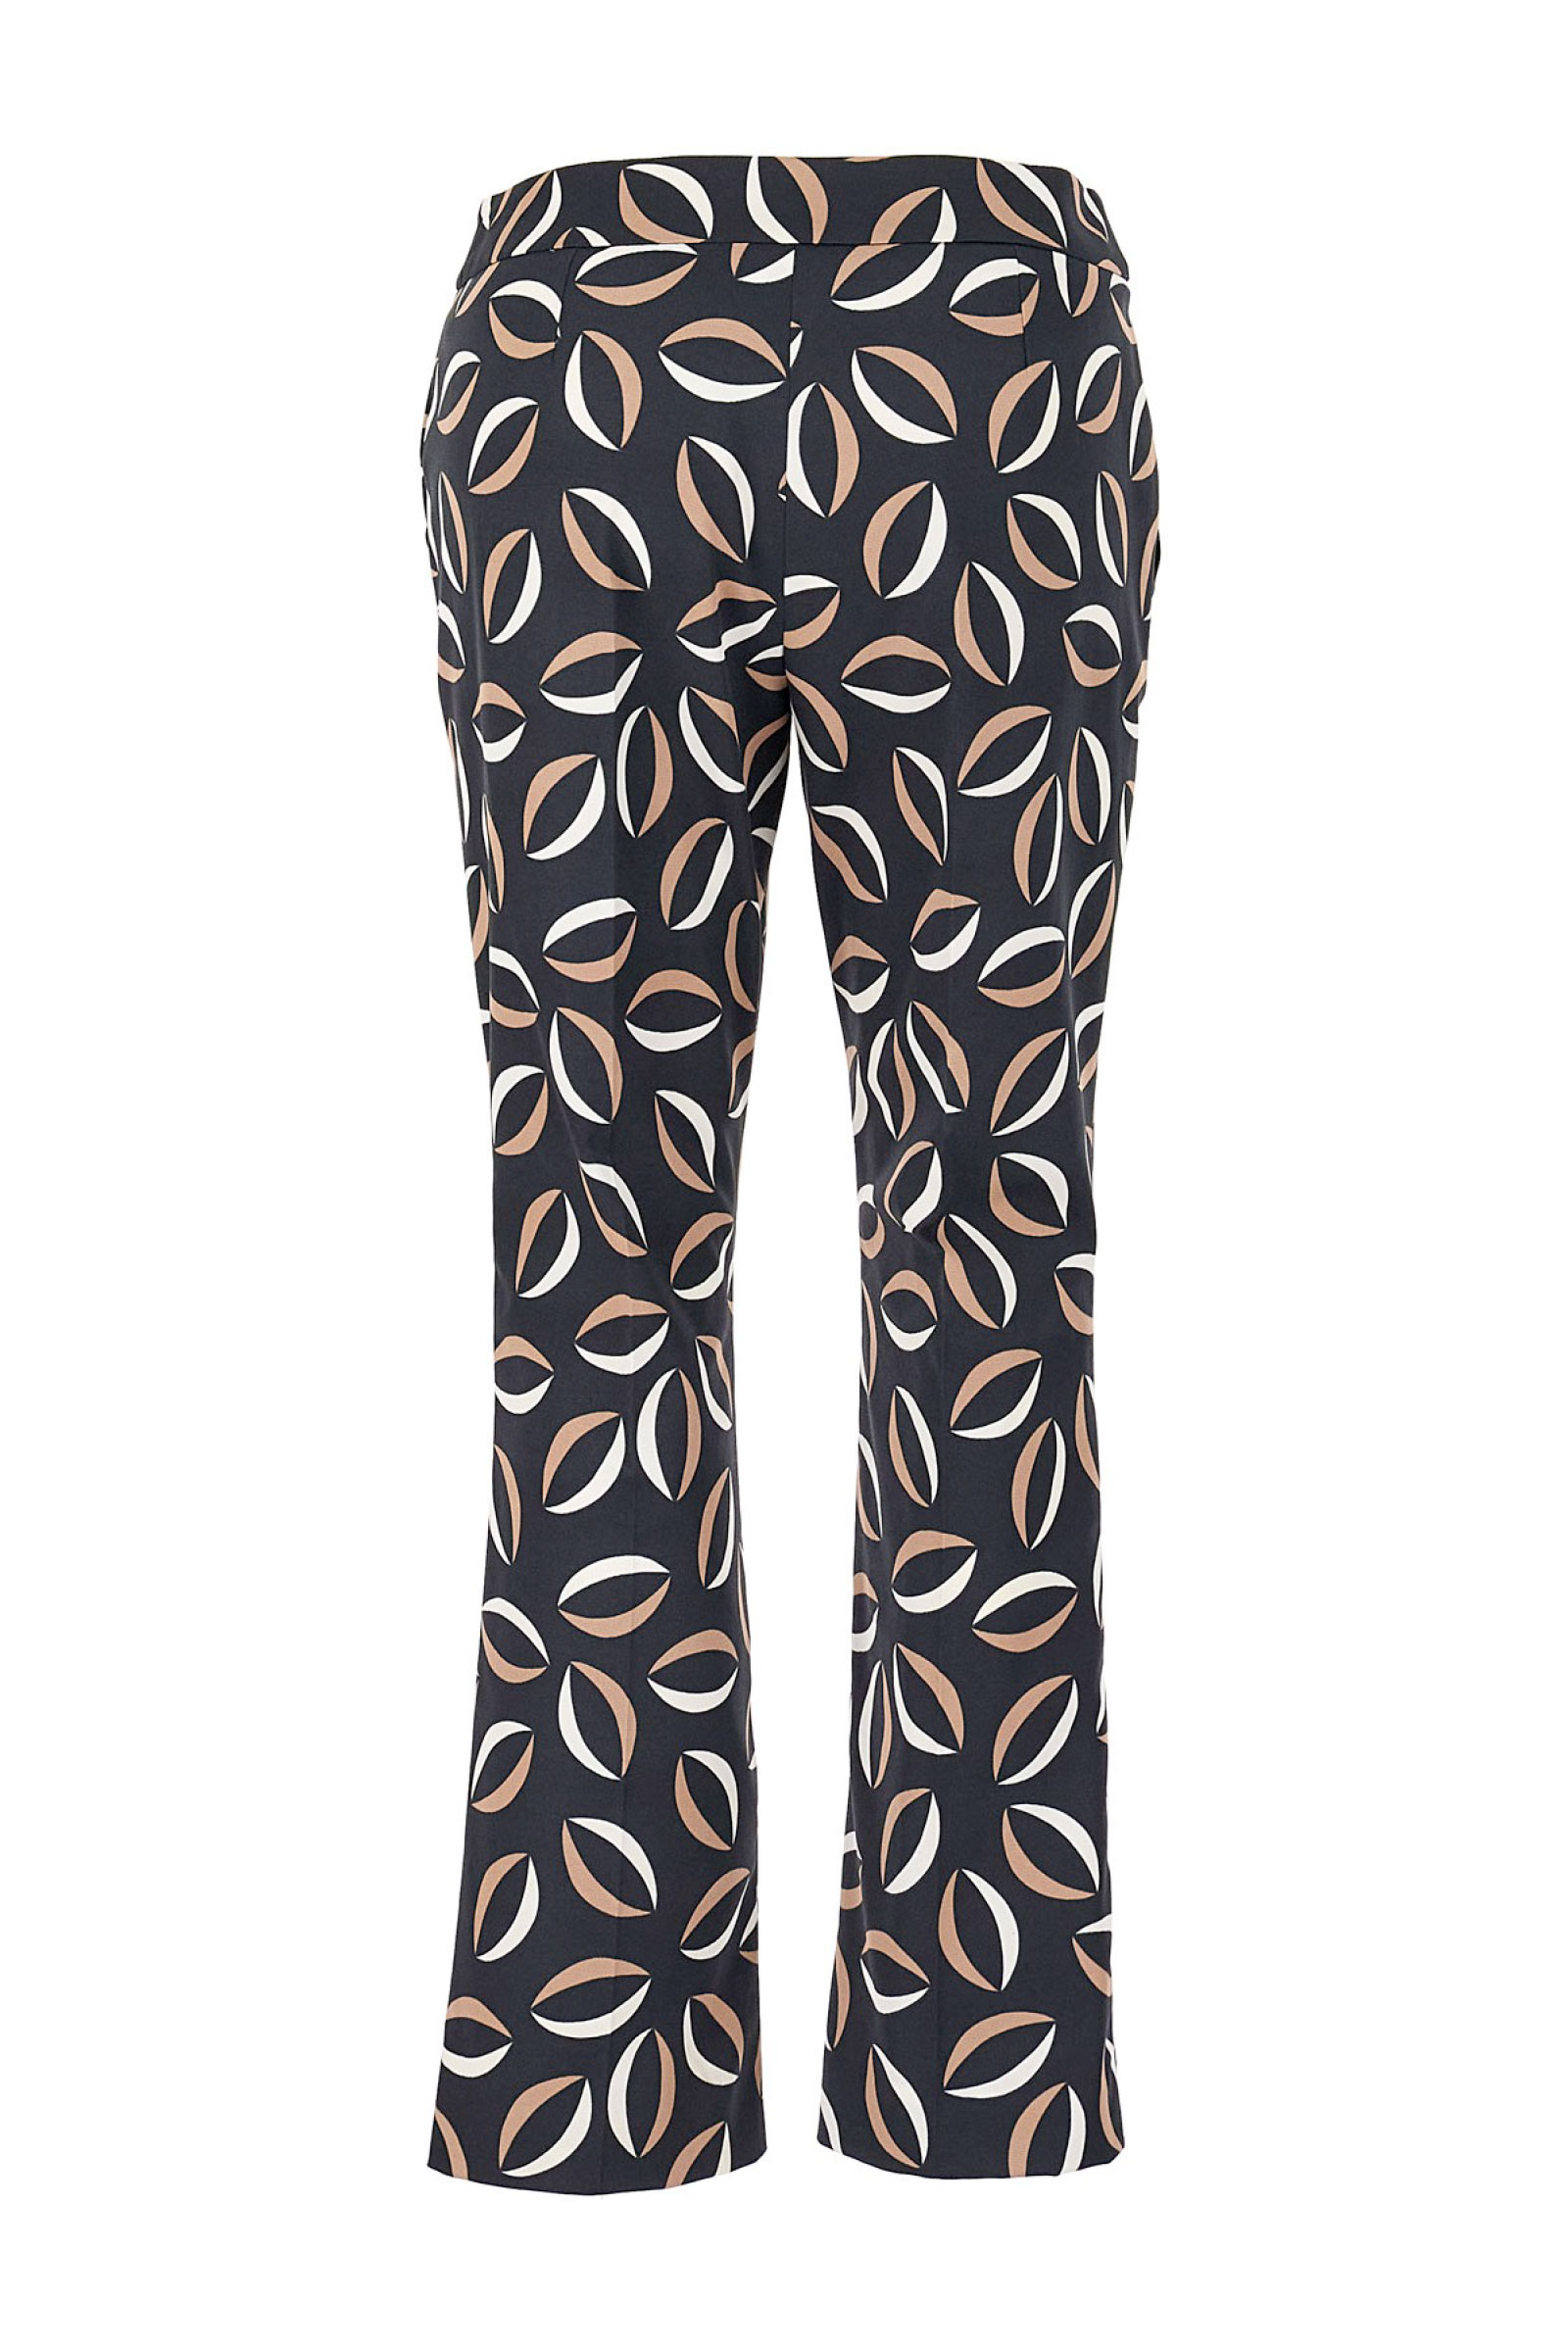 EMME MARELLA   Trousers   51310714000003